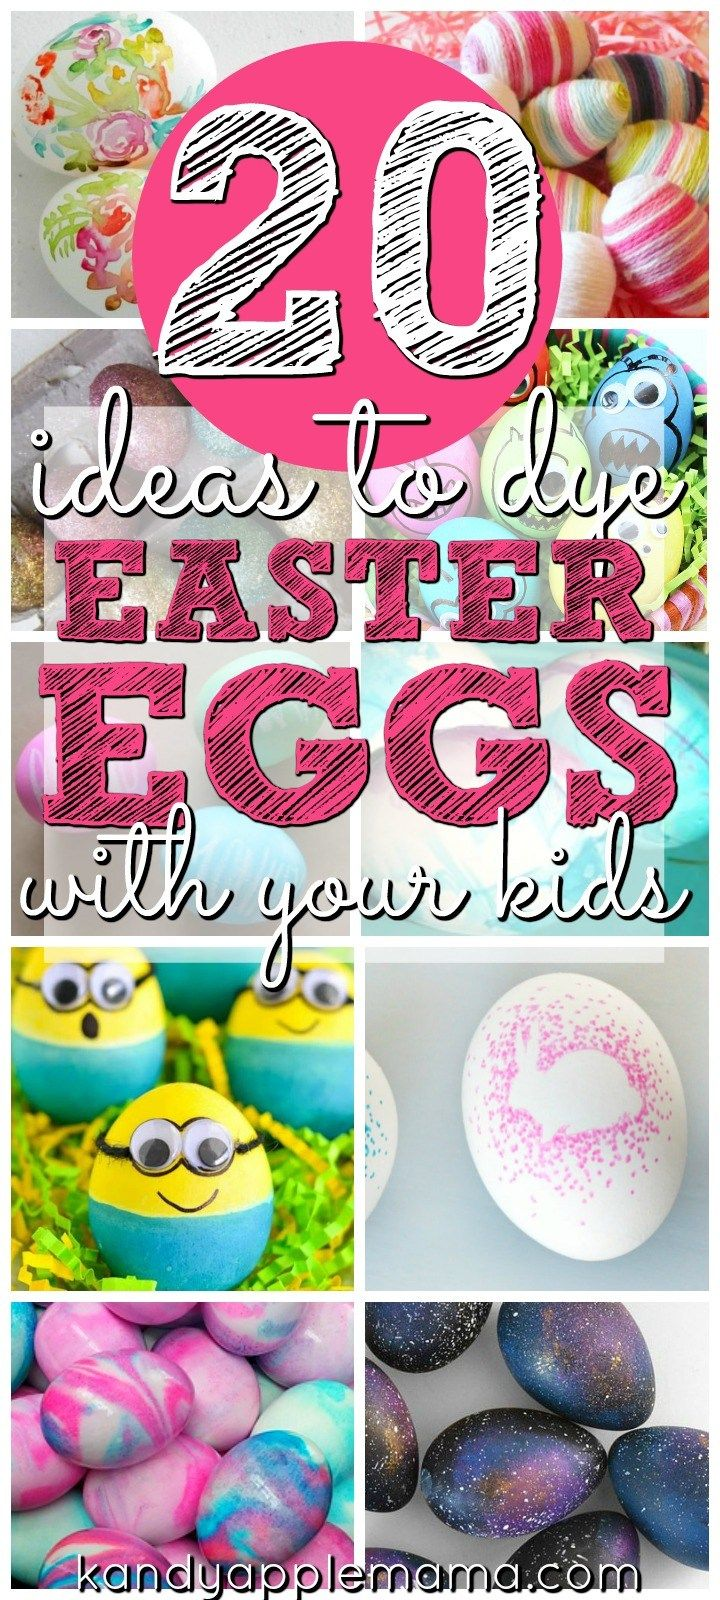 20 Ideas to Dye Easter Eggs with Your Kids - Kids Crafts!